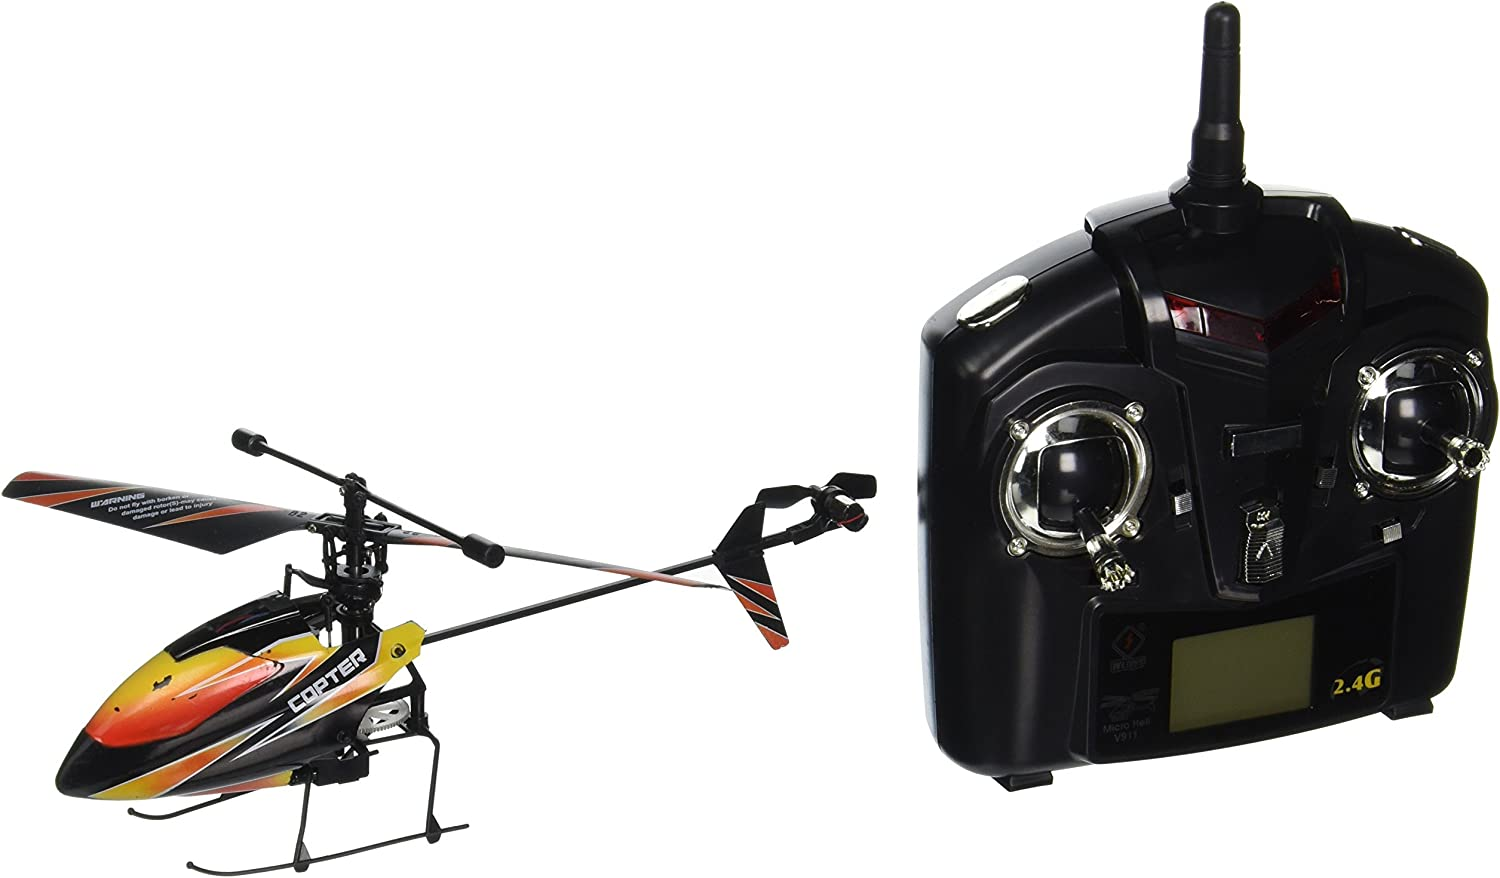 New WL V911 4 CH Single Rotor Helicopter Version 2 *New & Improved ...